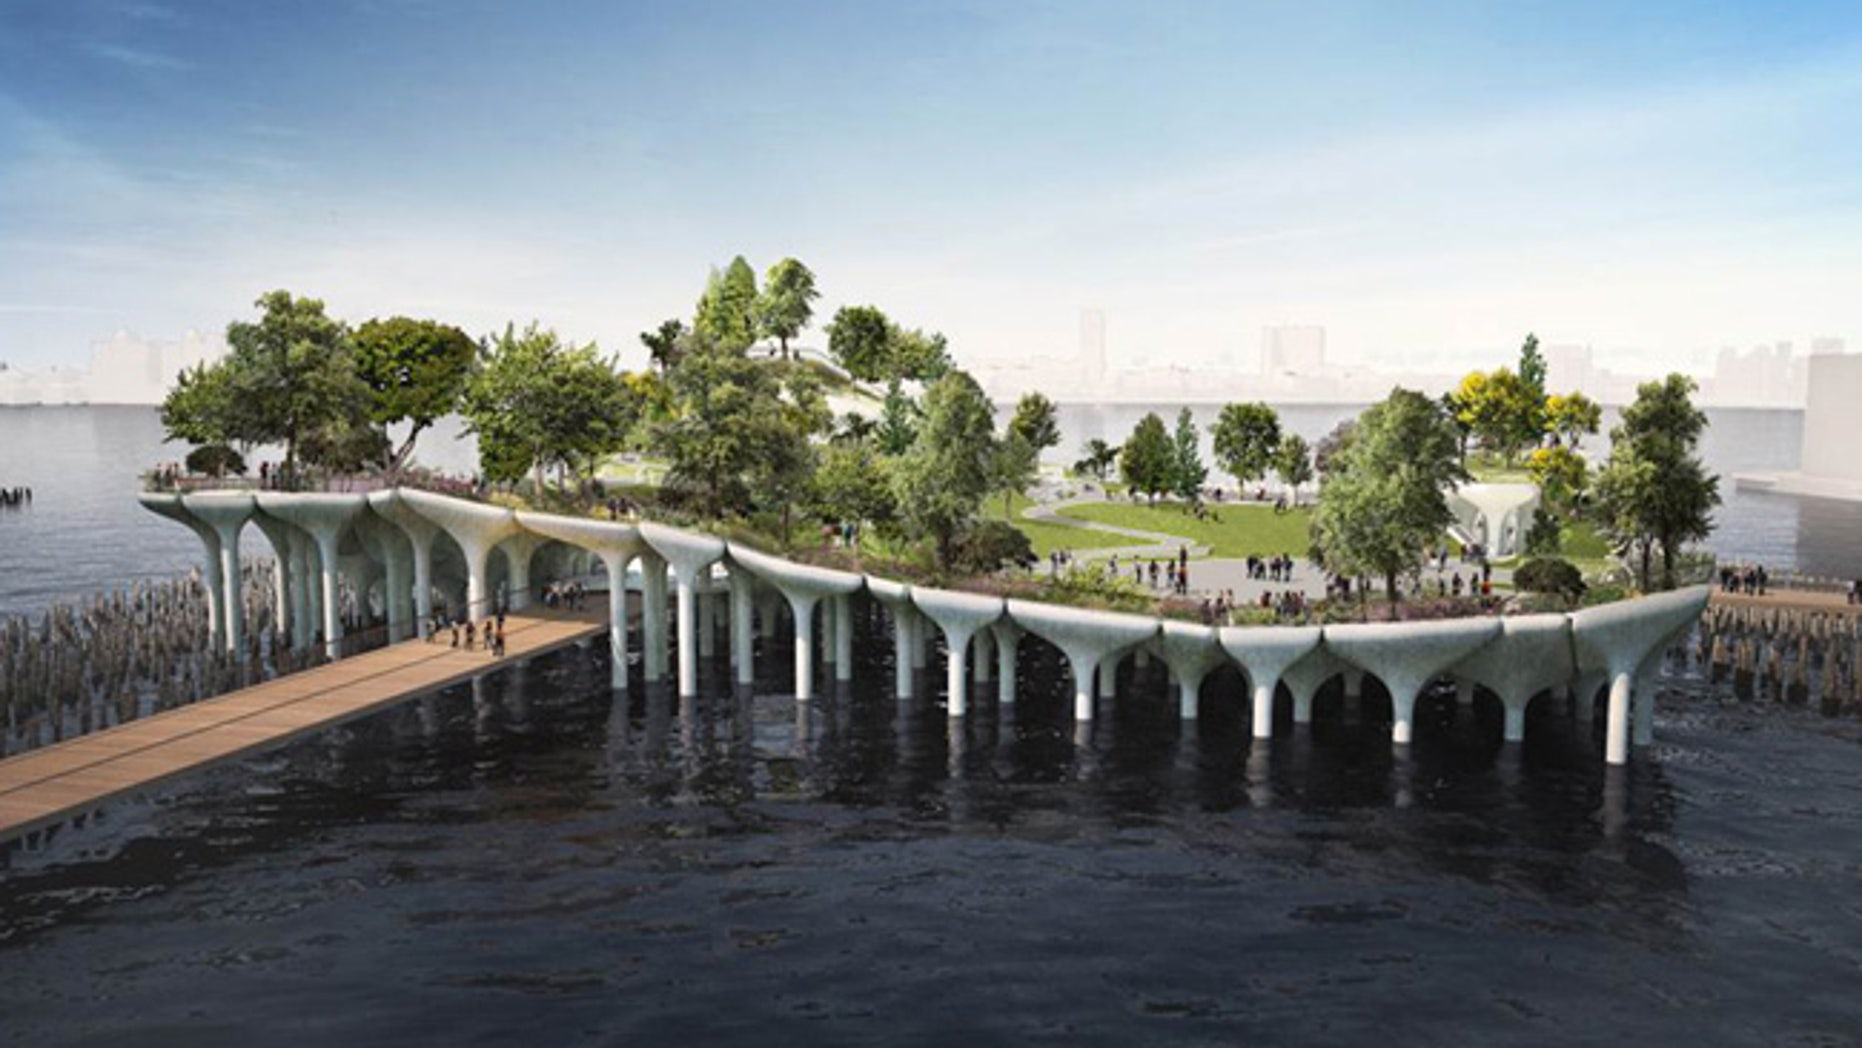 This undated artist rendering provided by Pier55 Inc./Heatherwick Studio, shows the proposed redevelopment of Pier 55 in New York City. Media mogul Barry Diller and his wife, fashion maven Diane von Furstenberg propose to spend about $200 million transforming Pier 55 on Manhattan's West Side from a bunch of historic piles jutting from the water into a futuristic, undulating park and performance space rising over a cluster of white mushroom-like caissons. (Pier55 Inc./Heatherwick Studio via AP)